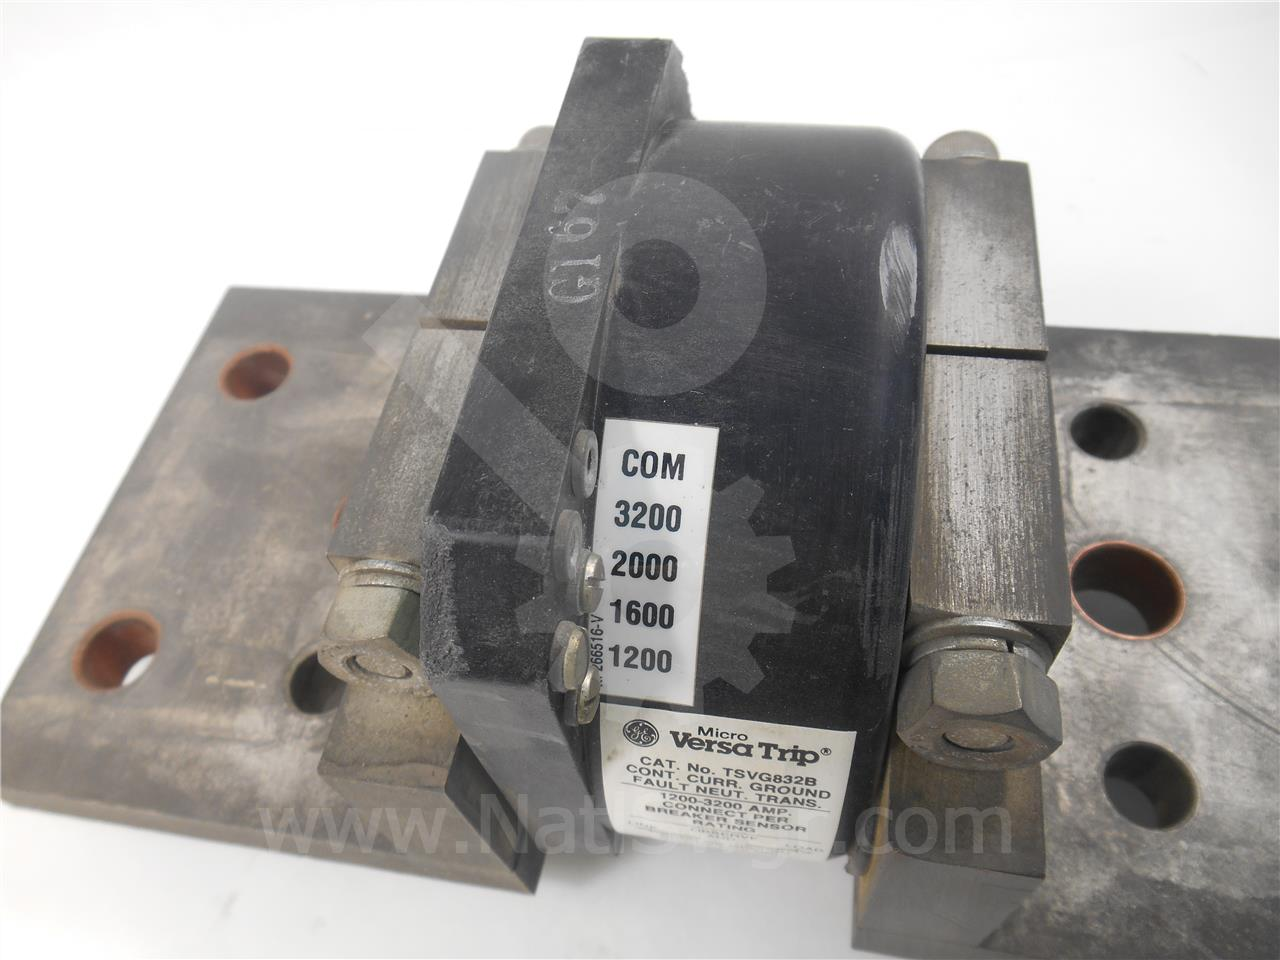 General Electric 1200-3200A GE MULTI RATIO NEUTRAL CURRENT TRANSFORMER MVT / ENTELLIGAURD